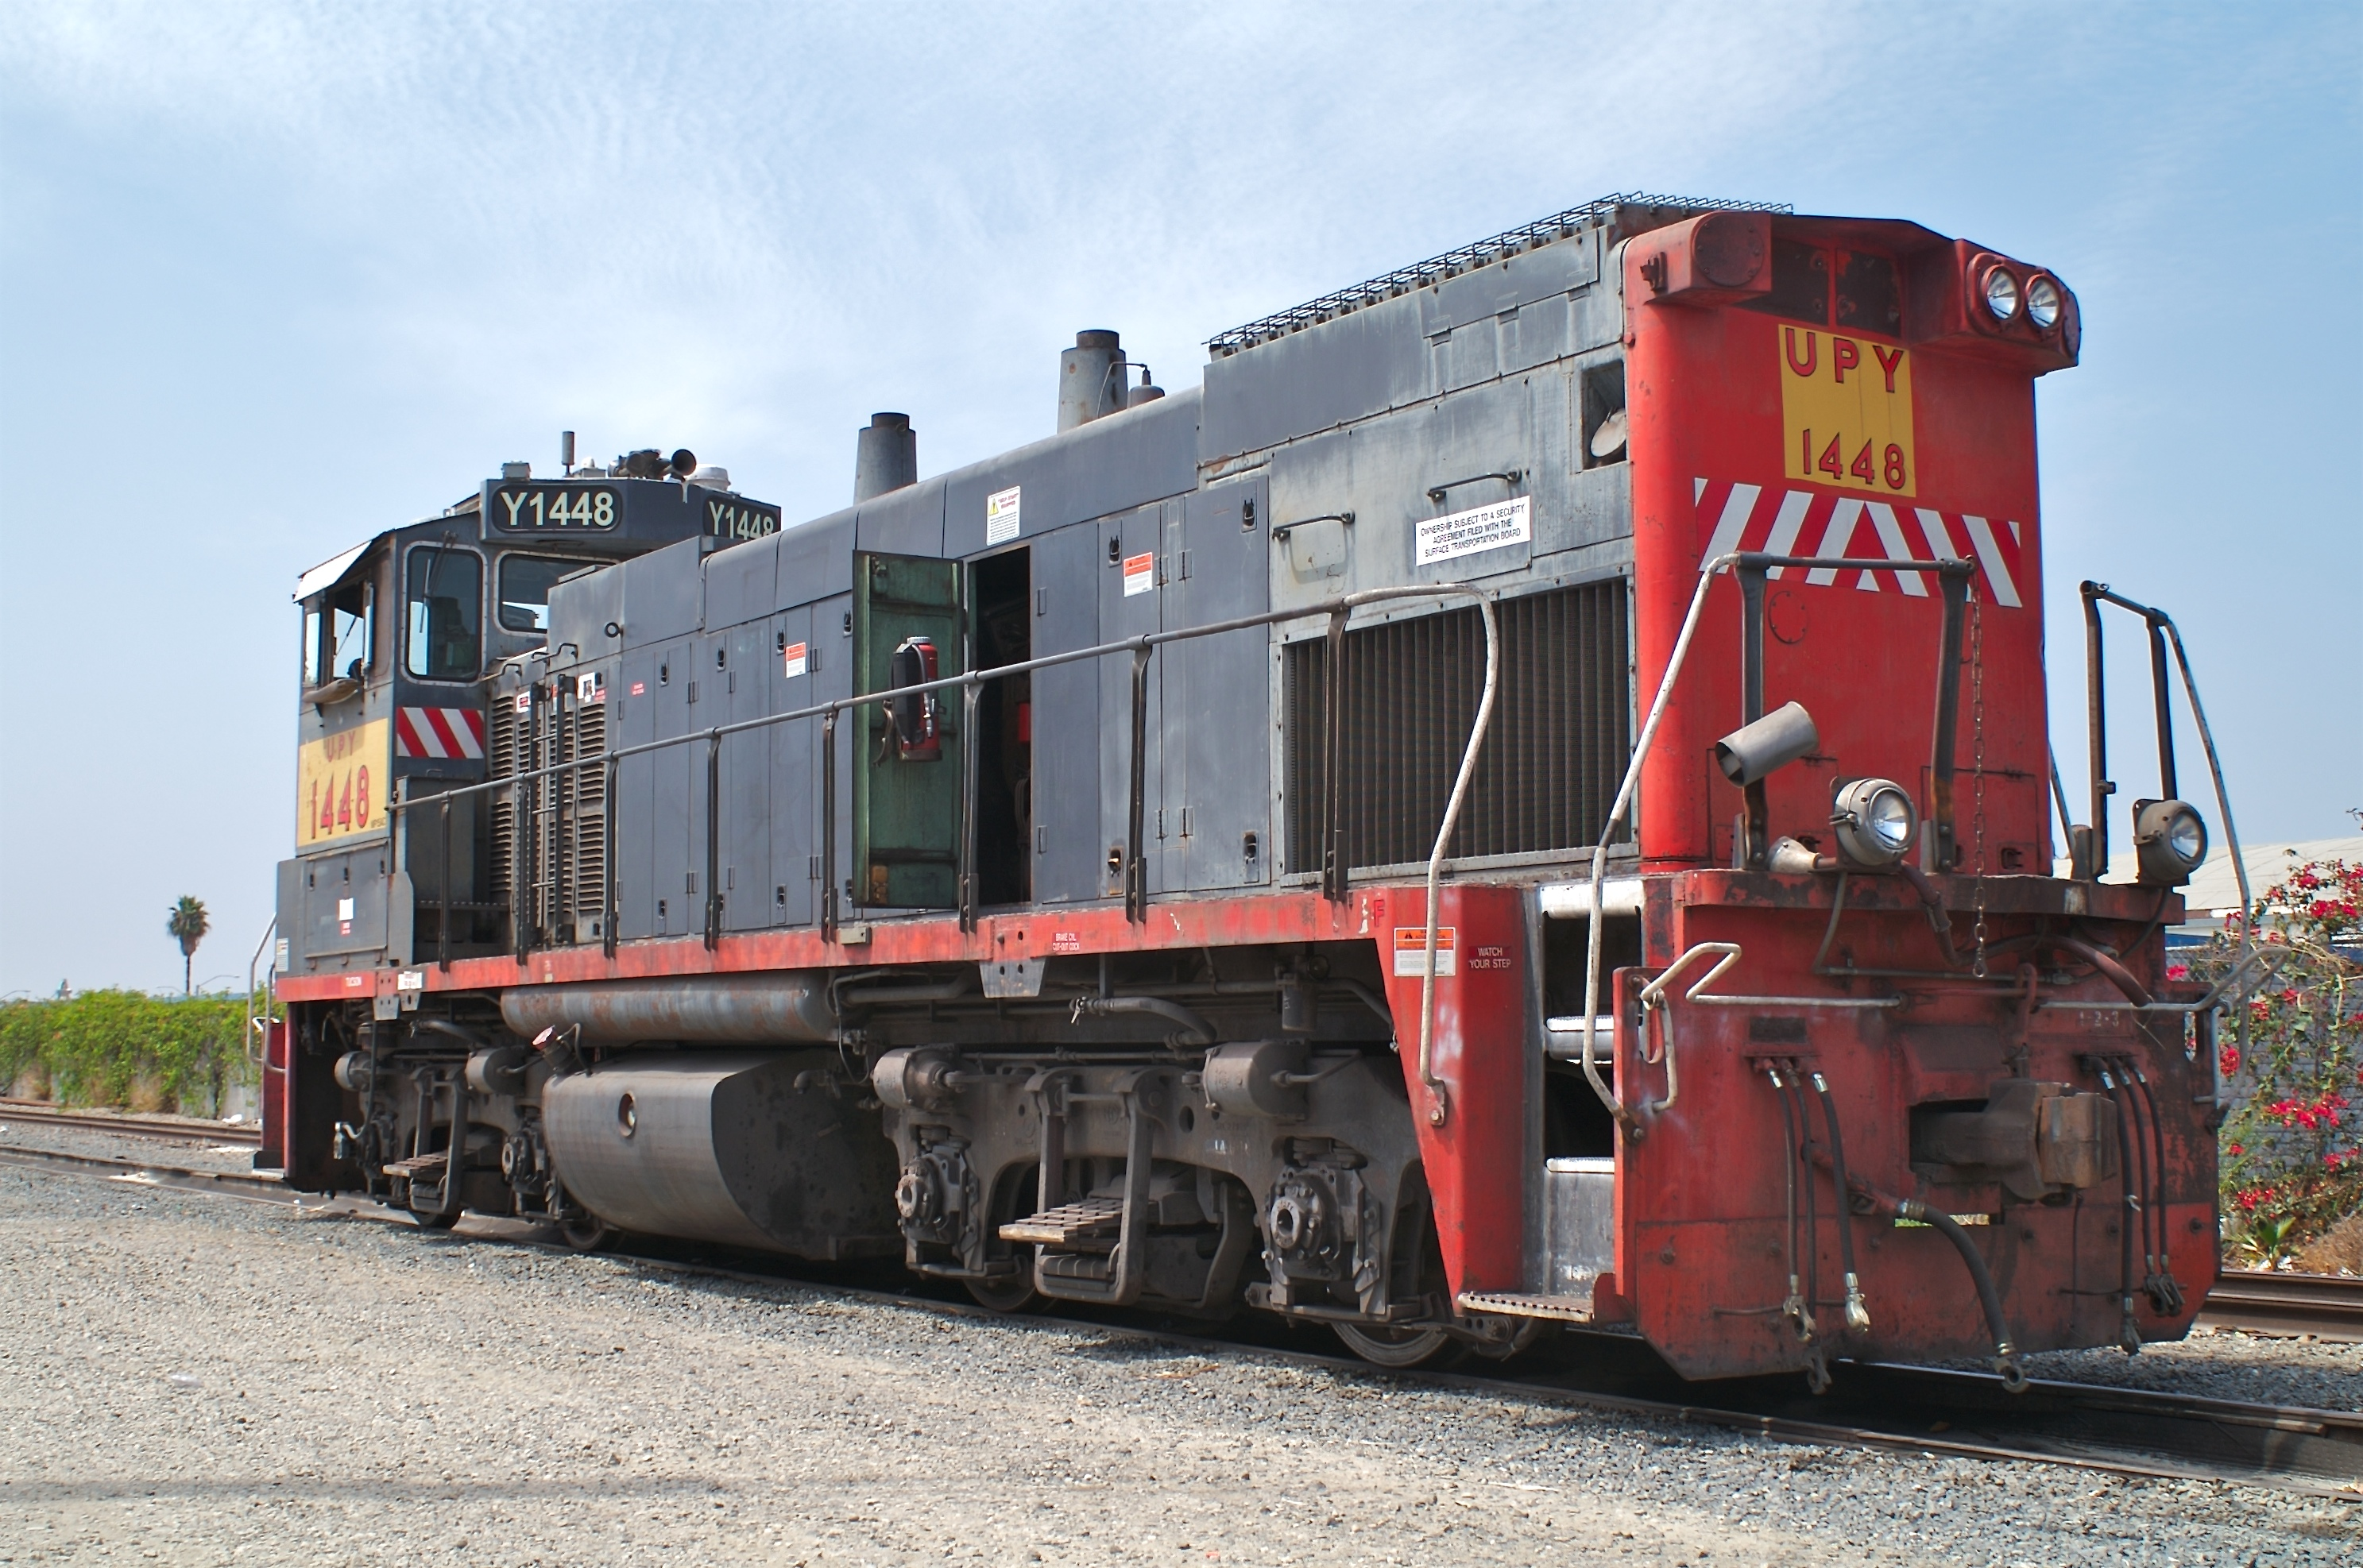 File:EMD MP15AC UPY 1448.jpg